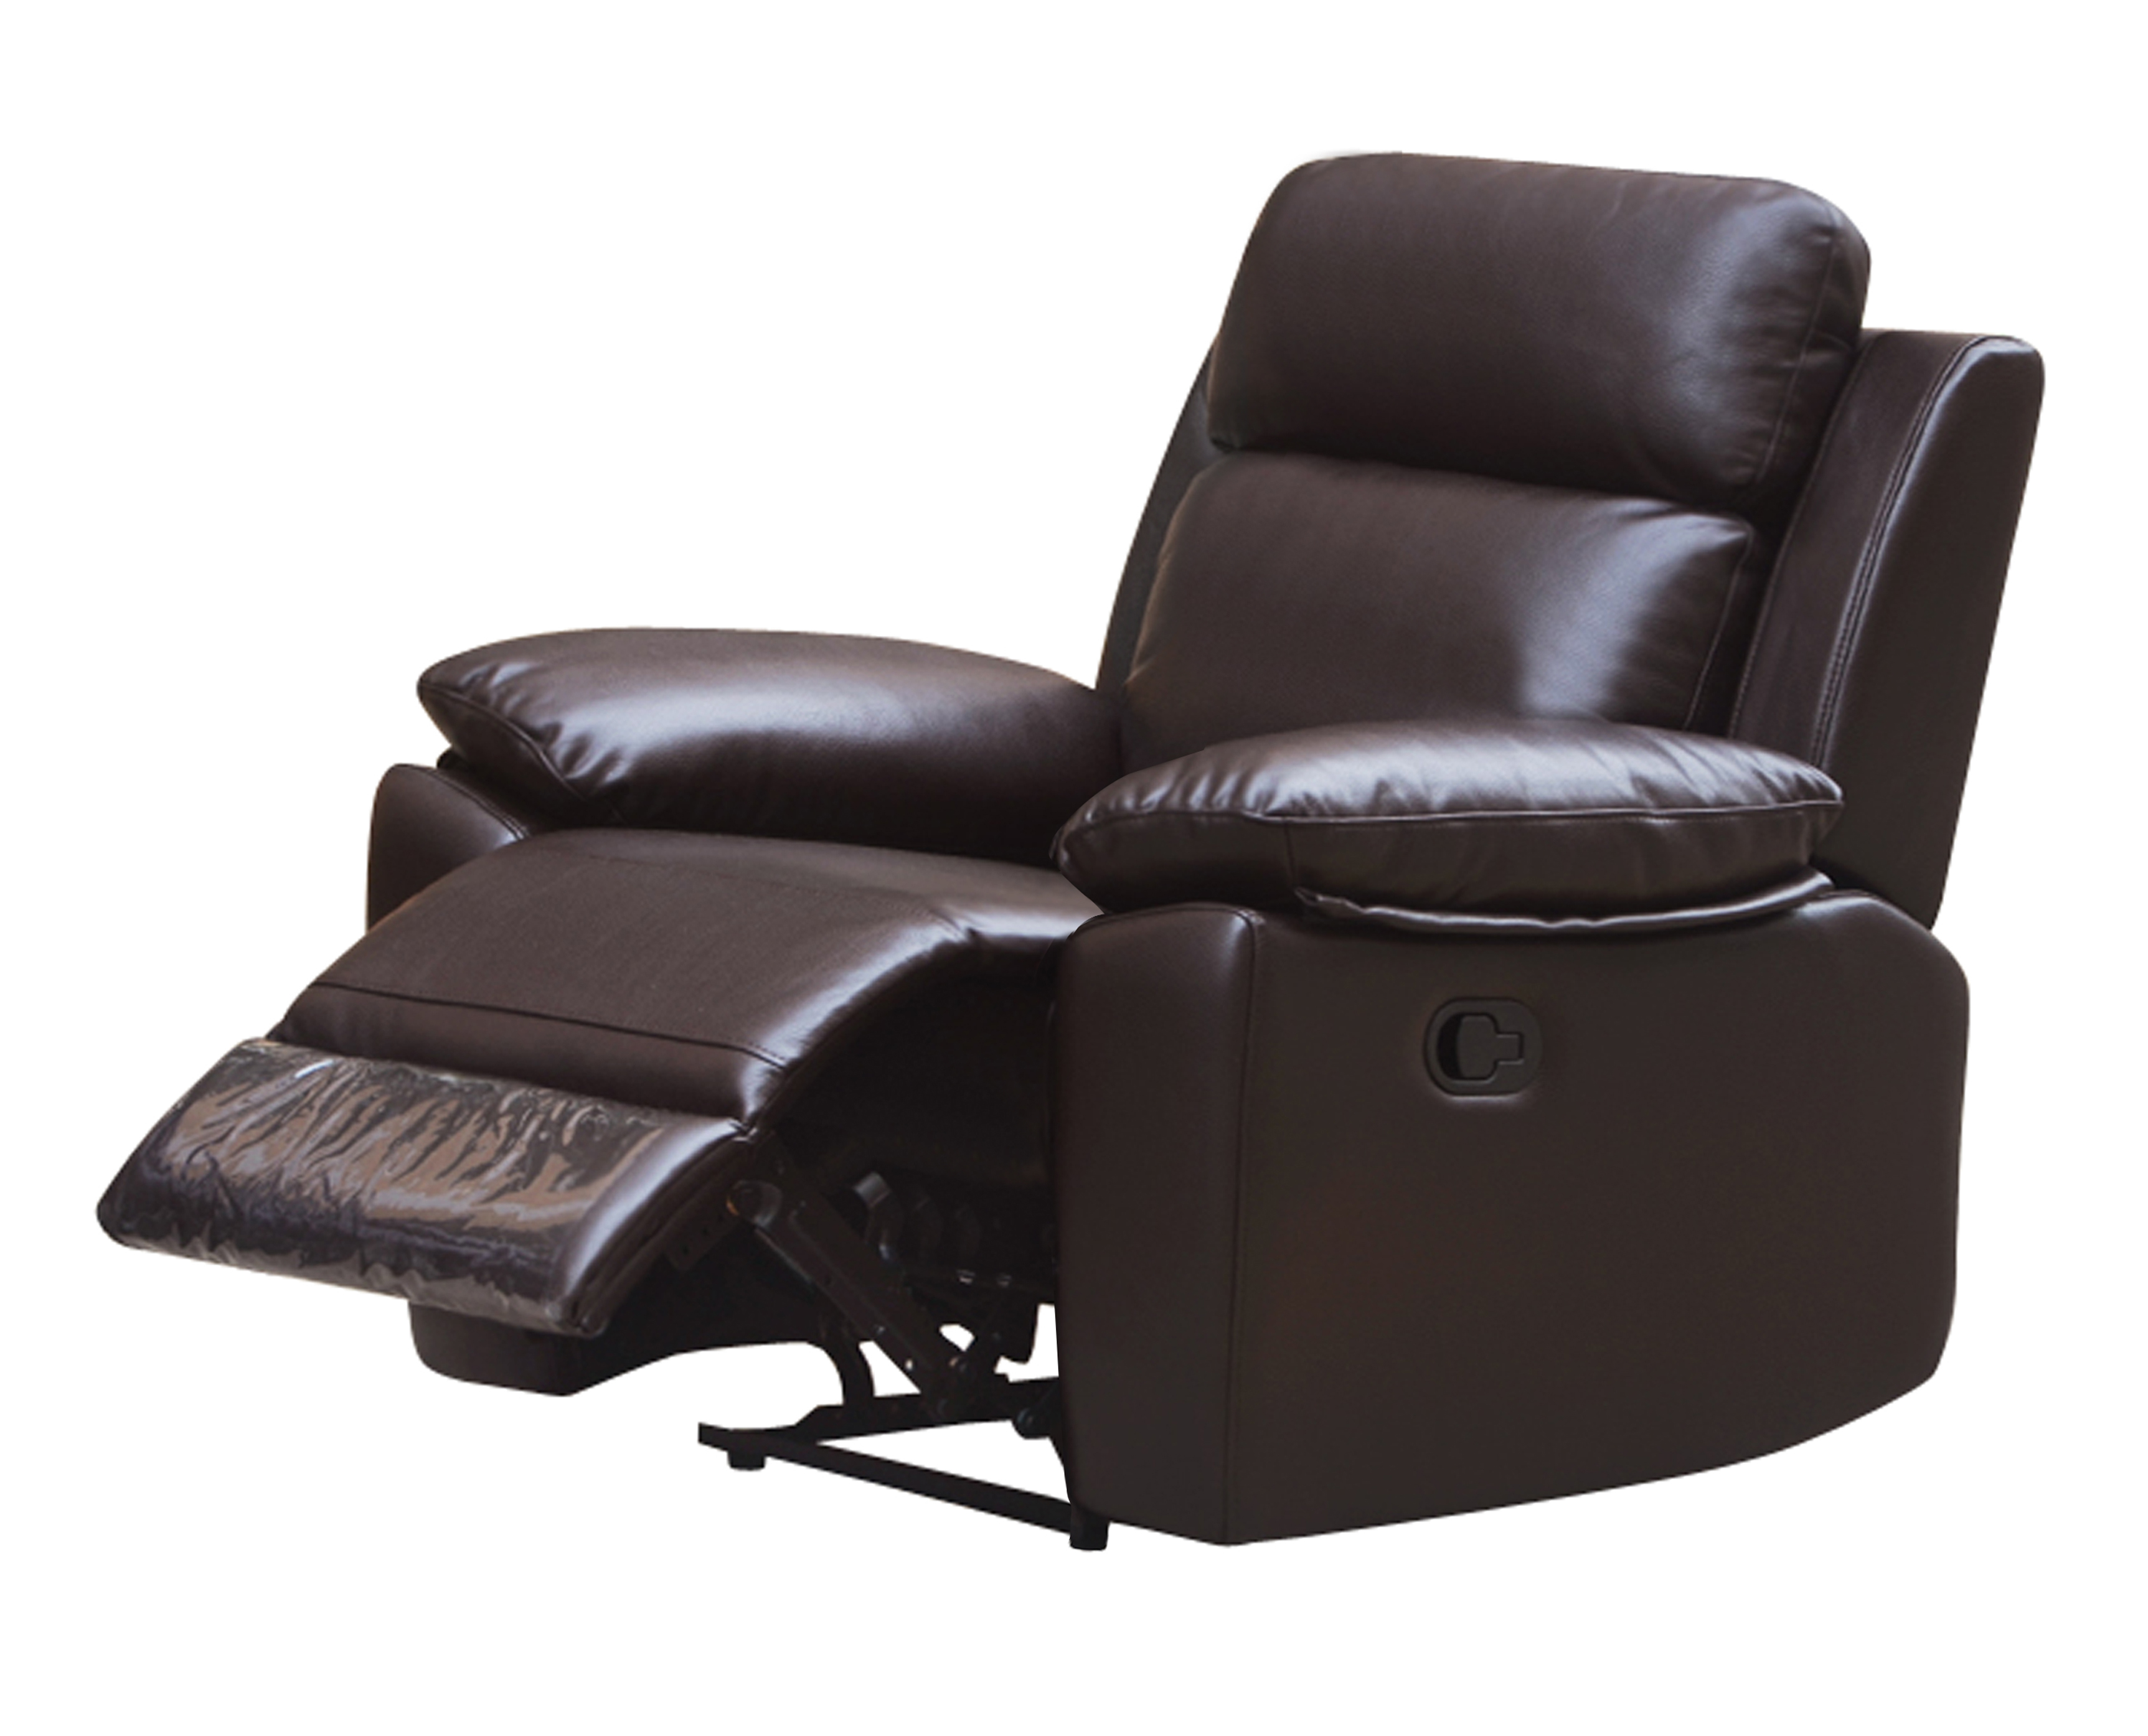 leo reclining chair leather air code g03 brown husky